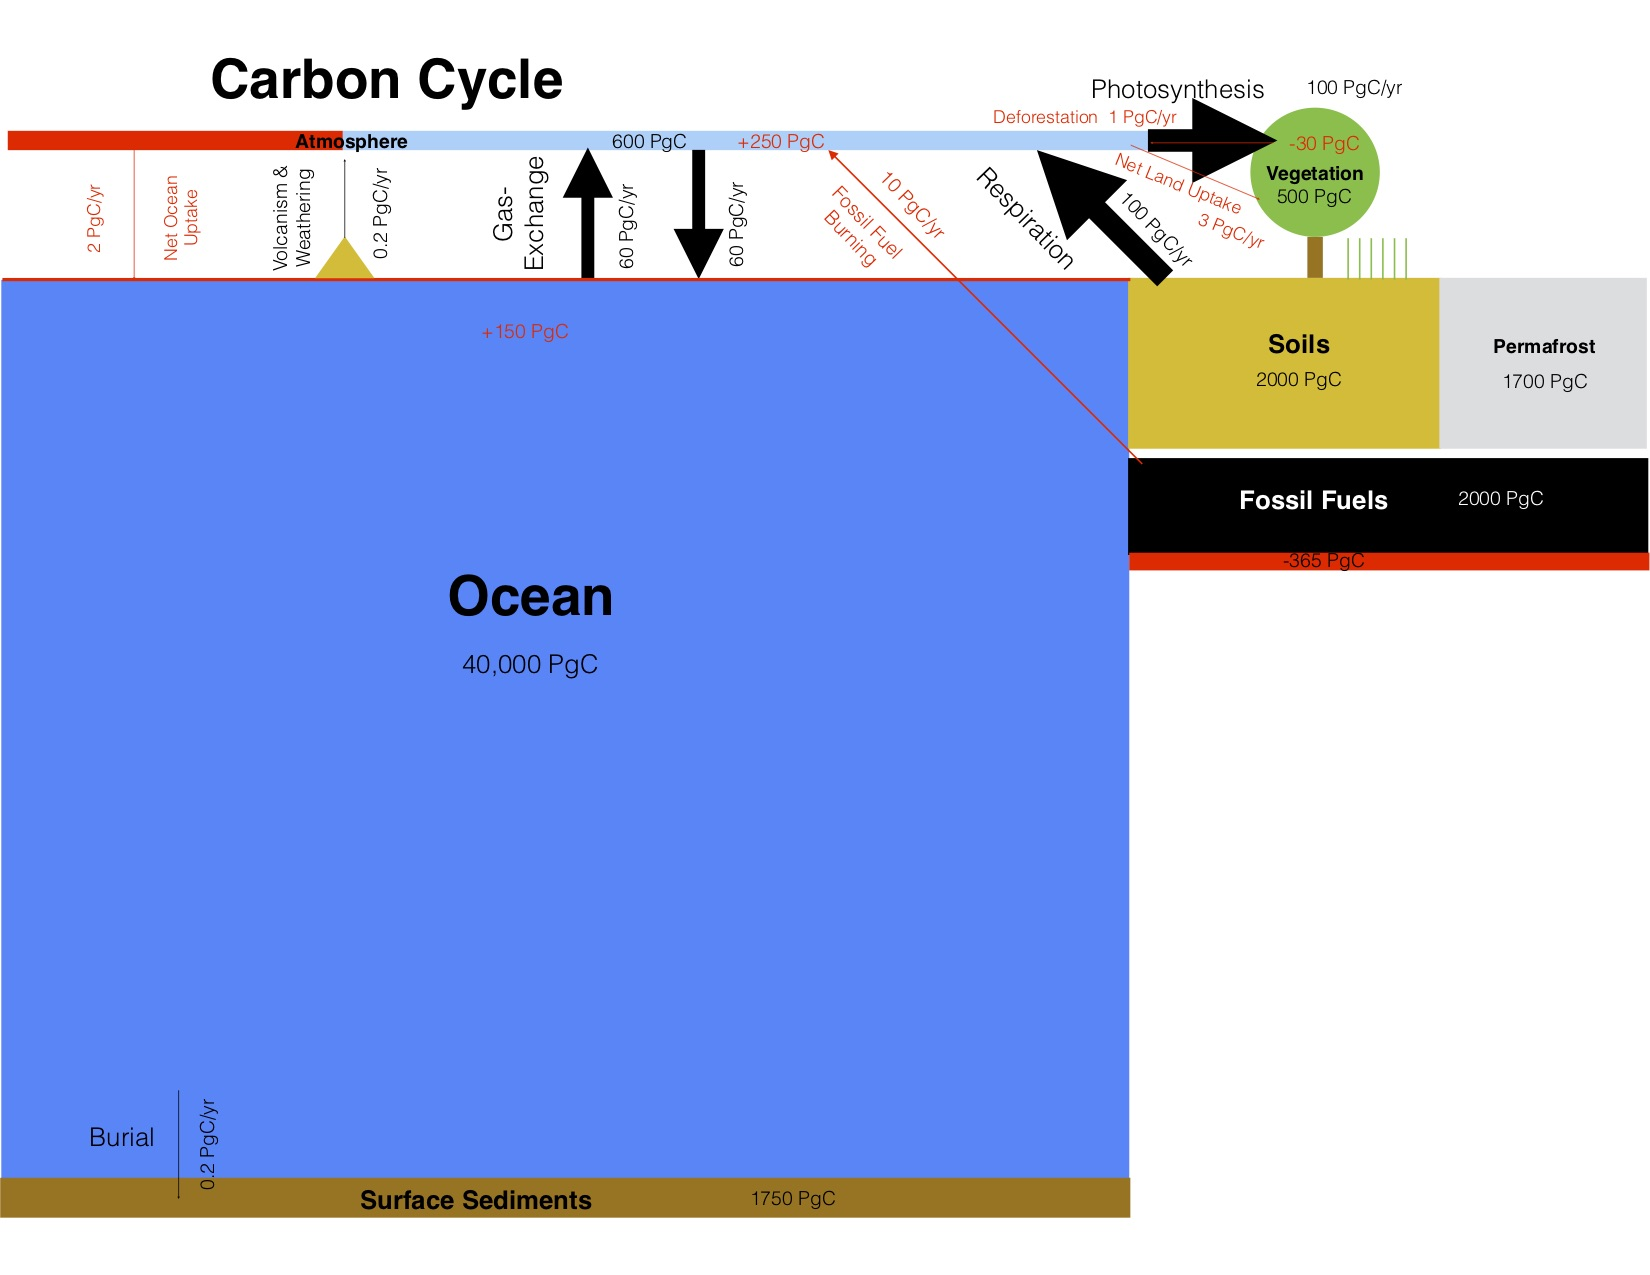 his figure of the global carbon cycle uses the same numbers as Fig. 1 but shows box sizes proportional to the size of the respective carbon reservoir. Red colors indicate human perturbations. Arrows are also proportional to the size of the fluxes, except for the small fluxes of sediment burial, volcanism and weathering, net ocean and land uptake and deforestation because those arrows would be hardly visible if drawn to scale. Based on Fig. 6.1 in IPCC (2013).